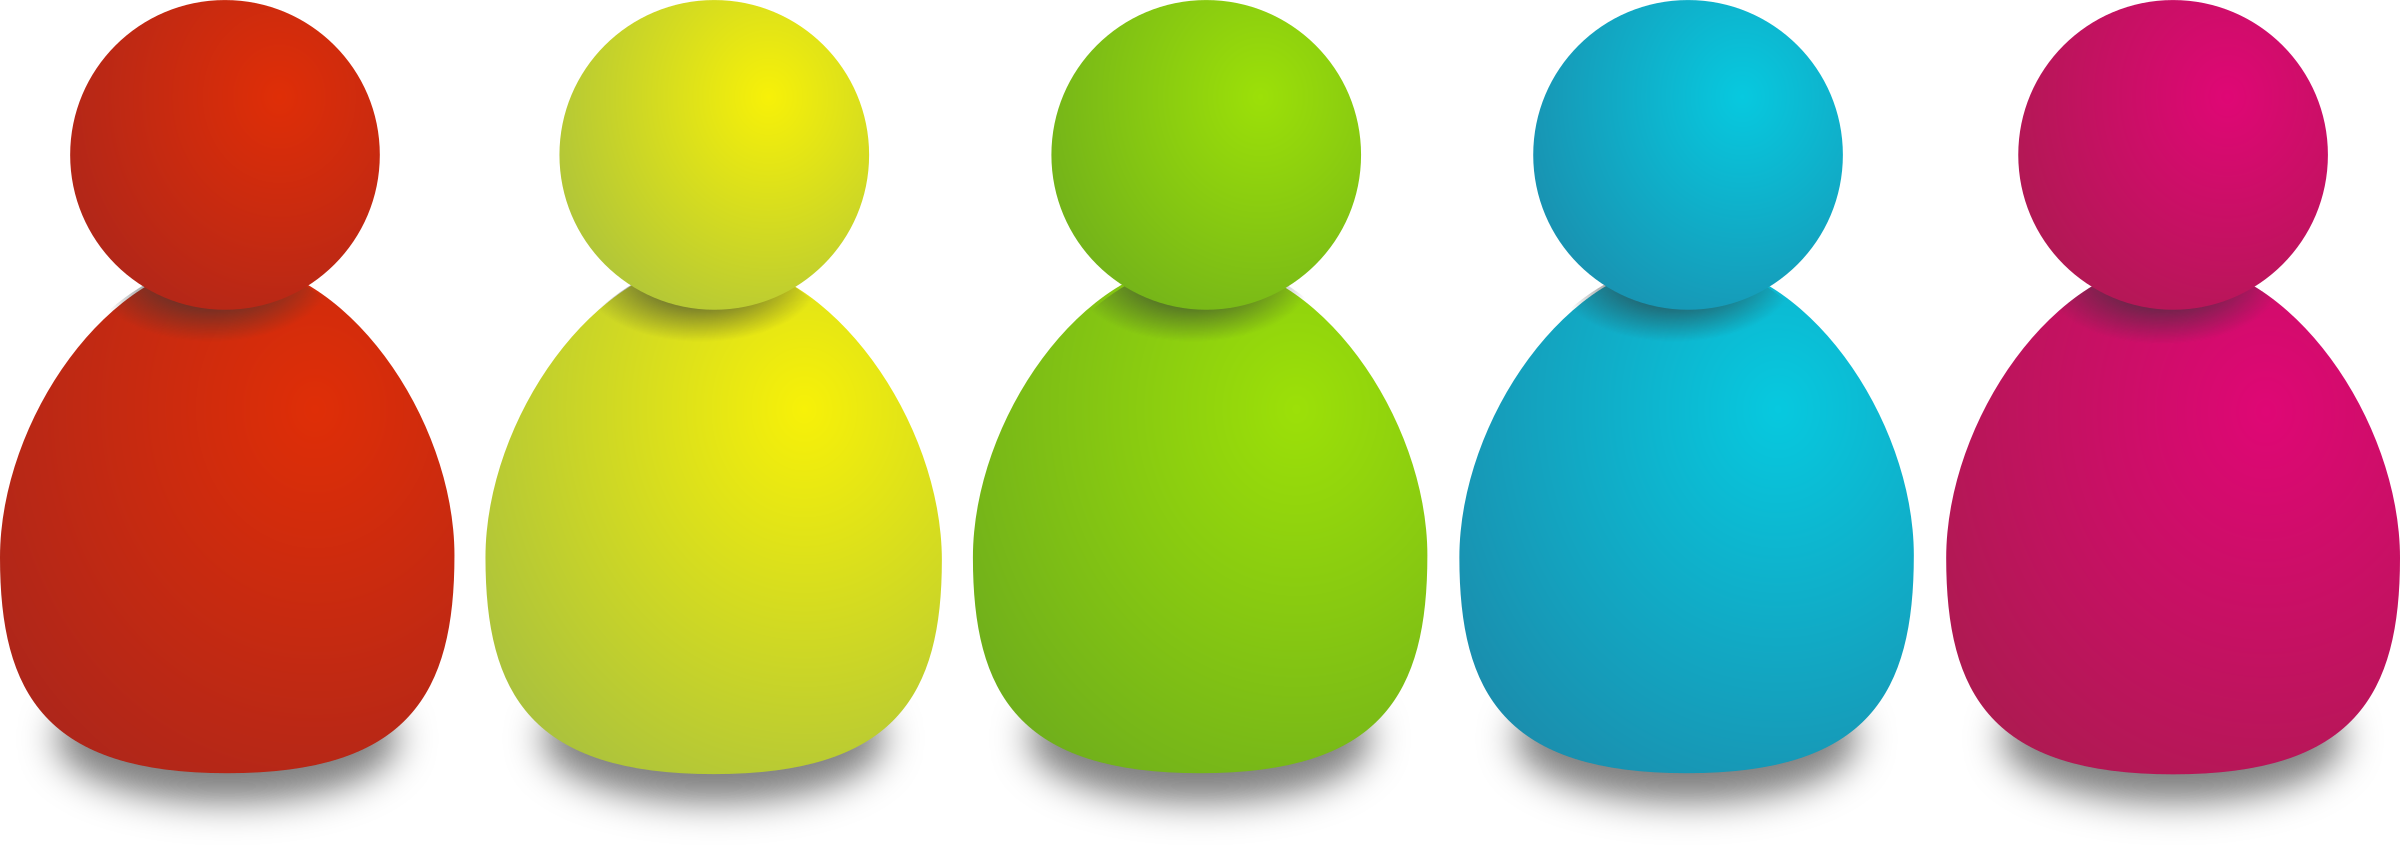 Ball clipart pawn Clipart or Users pawns Users